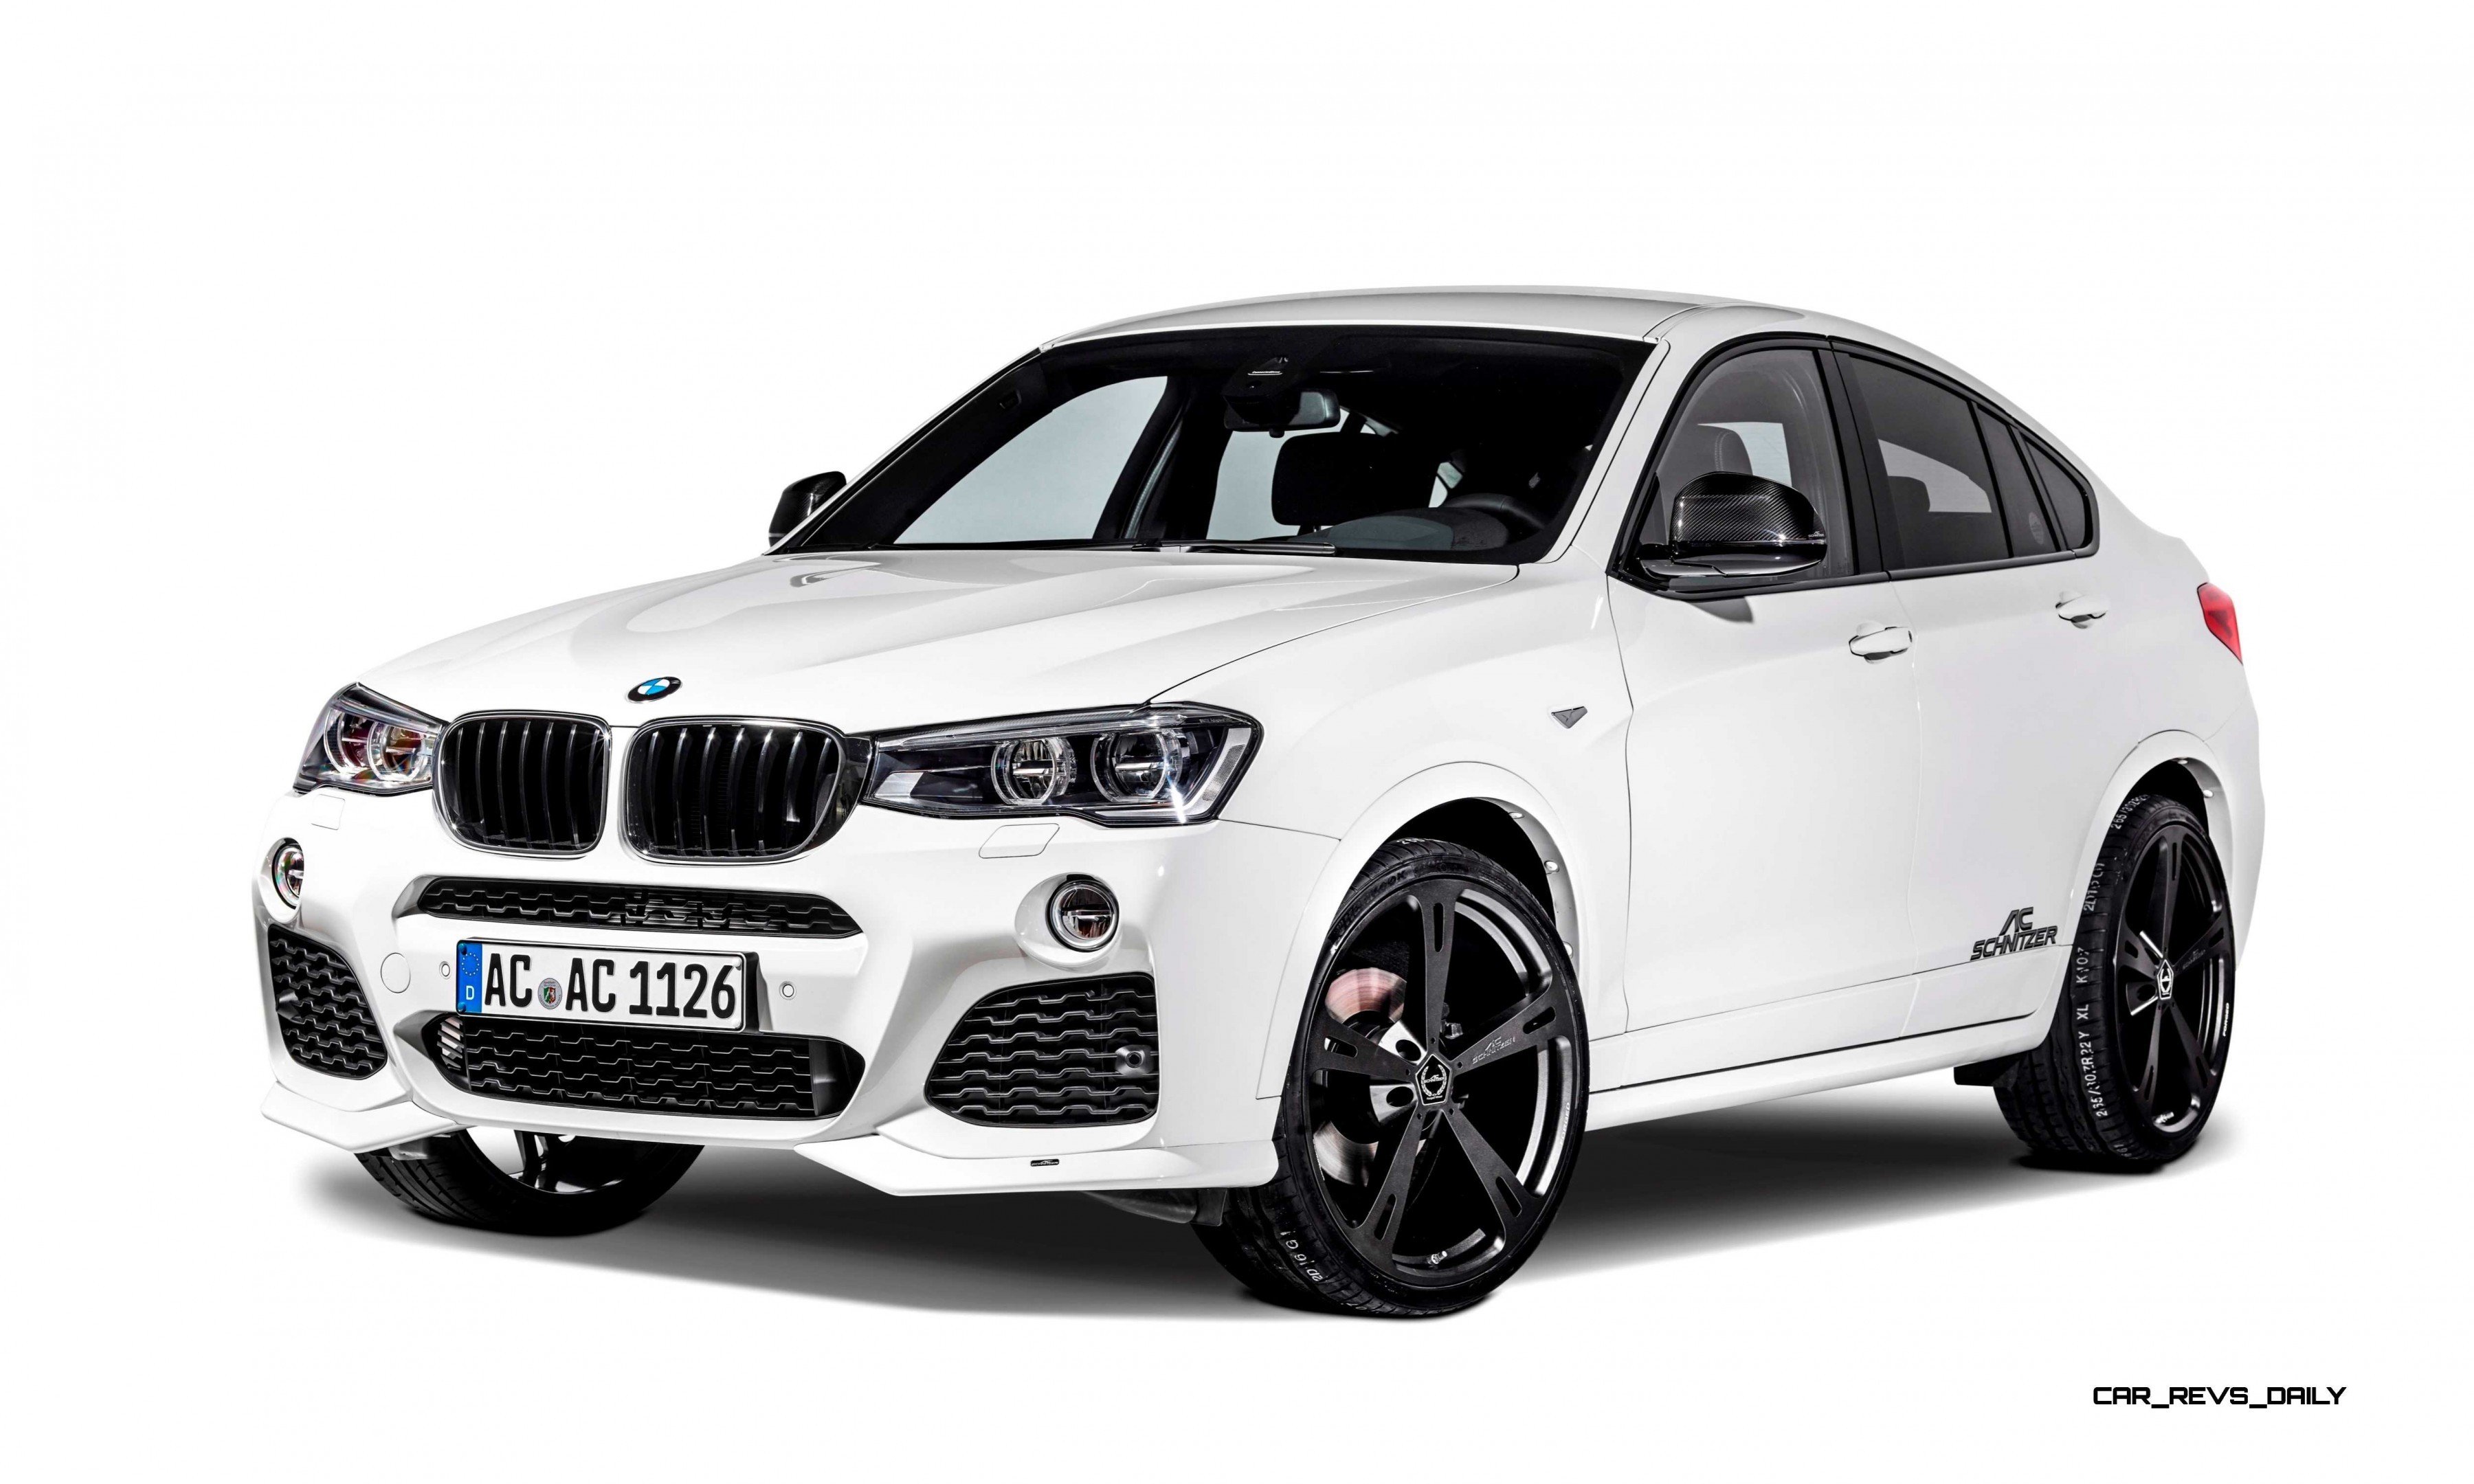 ac schnitzer bmw x4 revealed today in zurich with exterior and engine mods for all trims. Black Bedroom Furniture Sets. Home Design Ideas